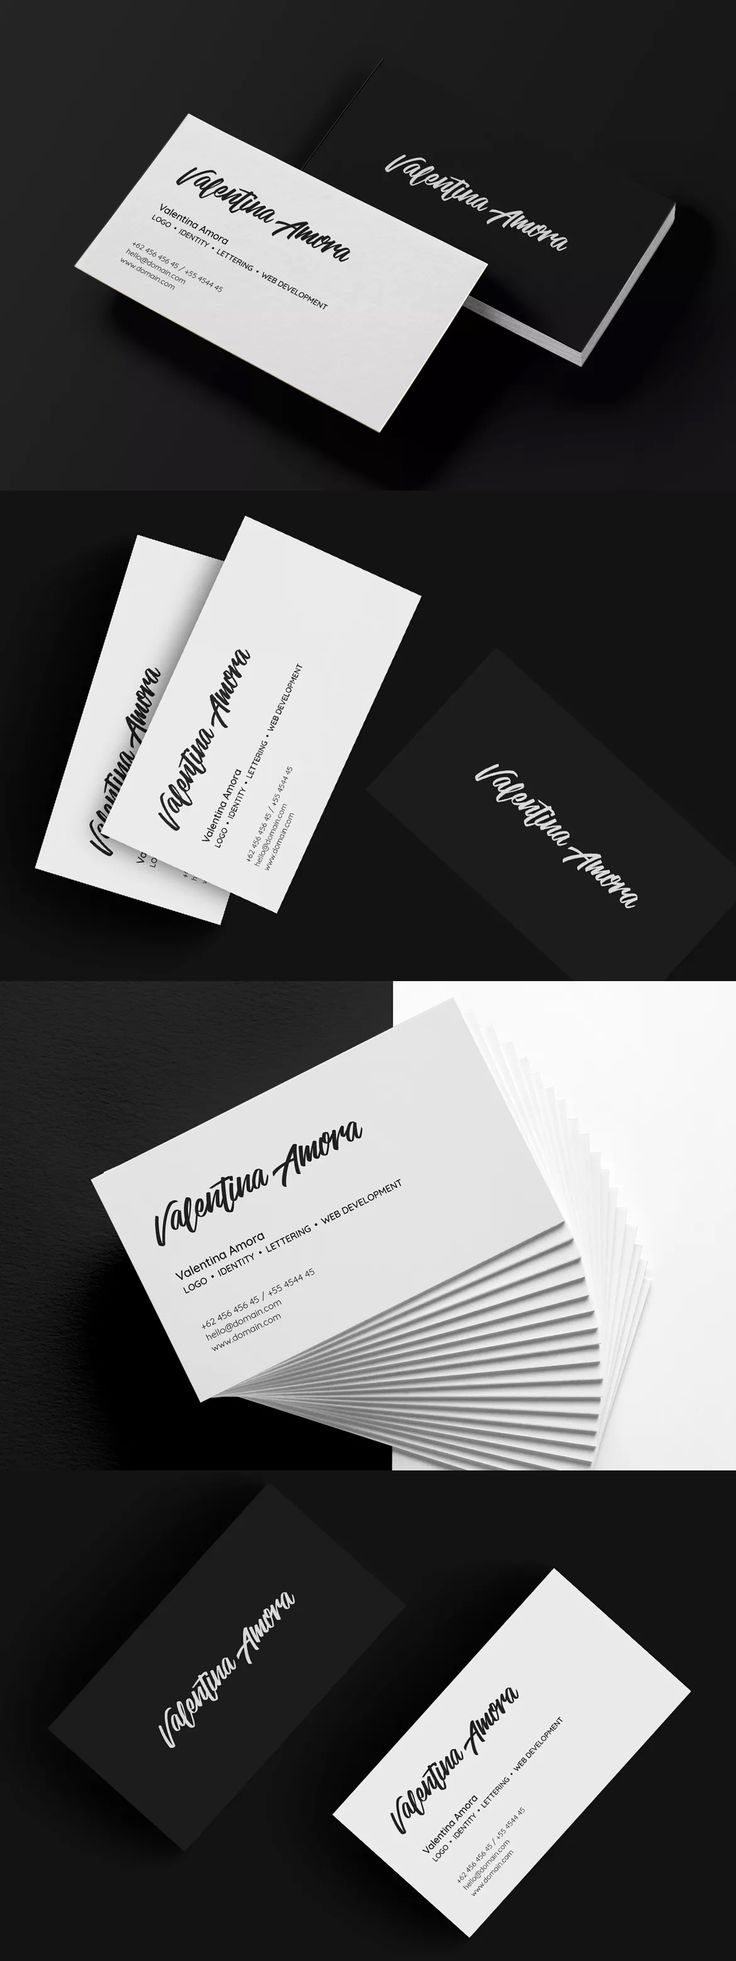 137 best business card template images on pinterest business card minimal freelance business card template psd wajeb Images